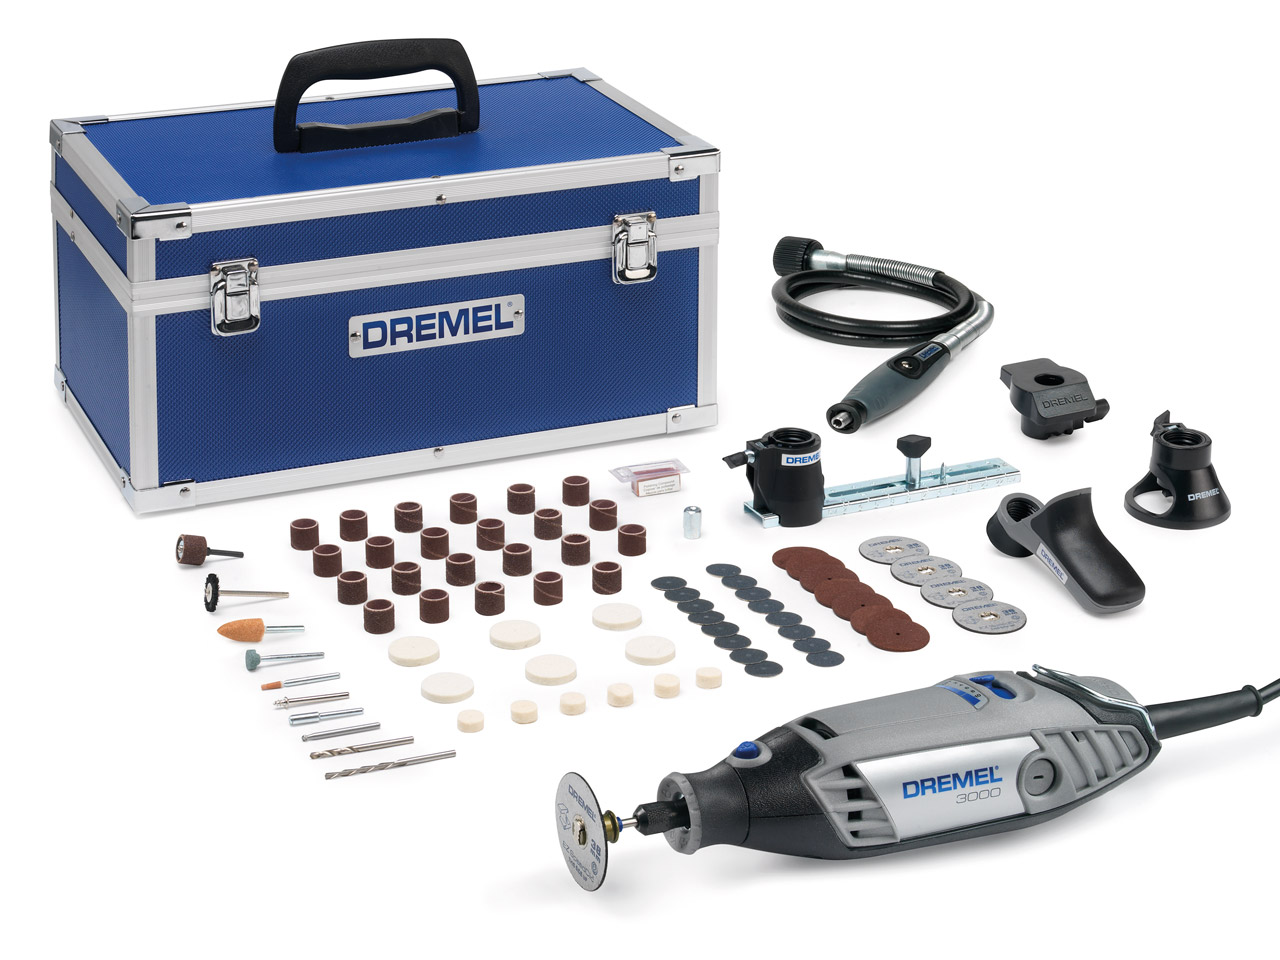 Dremel 3000 5 Star Promo Christmas Kit 75 Accessories